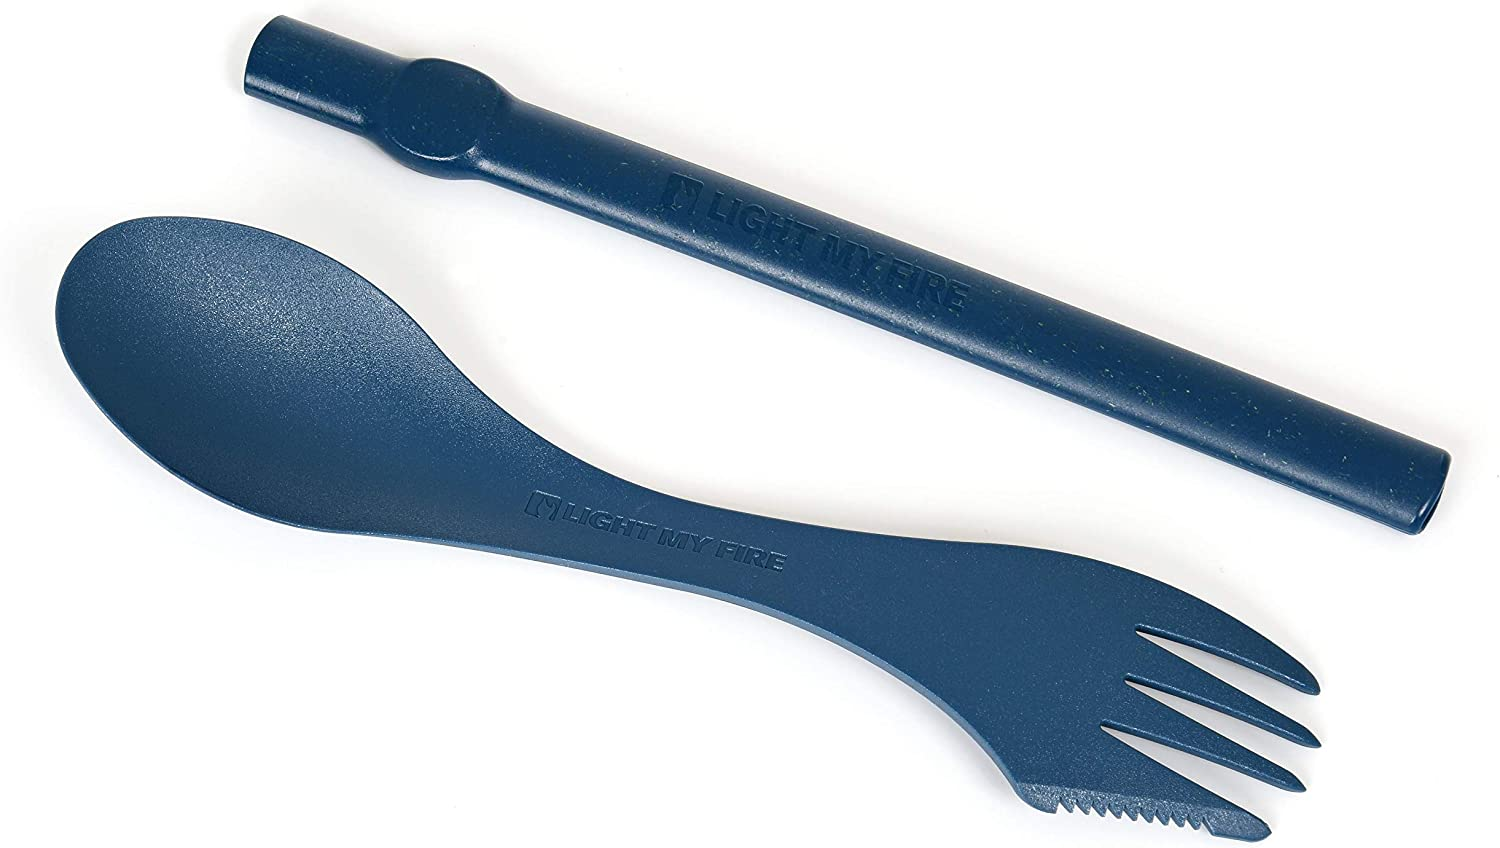 Made in Sweden Red Light My Fire SPORK ORIGINAL BIO Reusable cutlery for On-The-Go